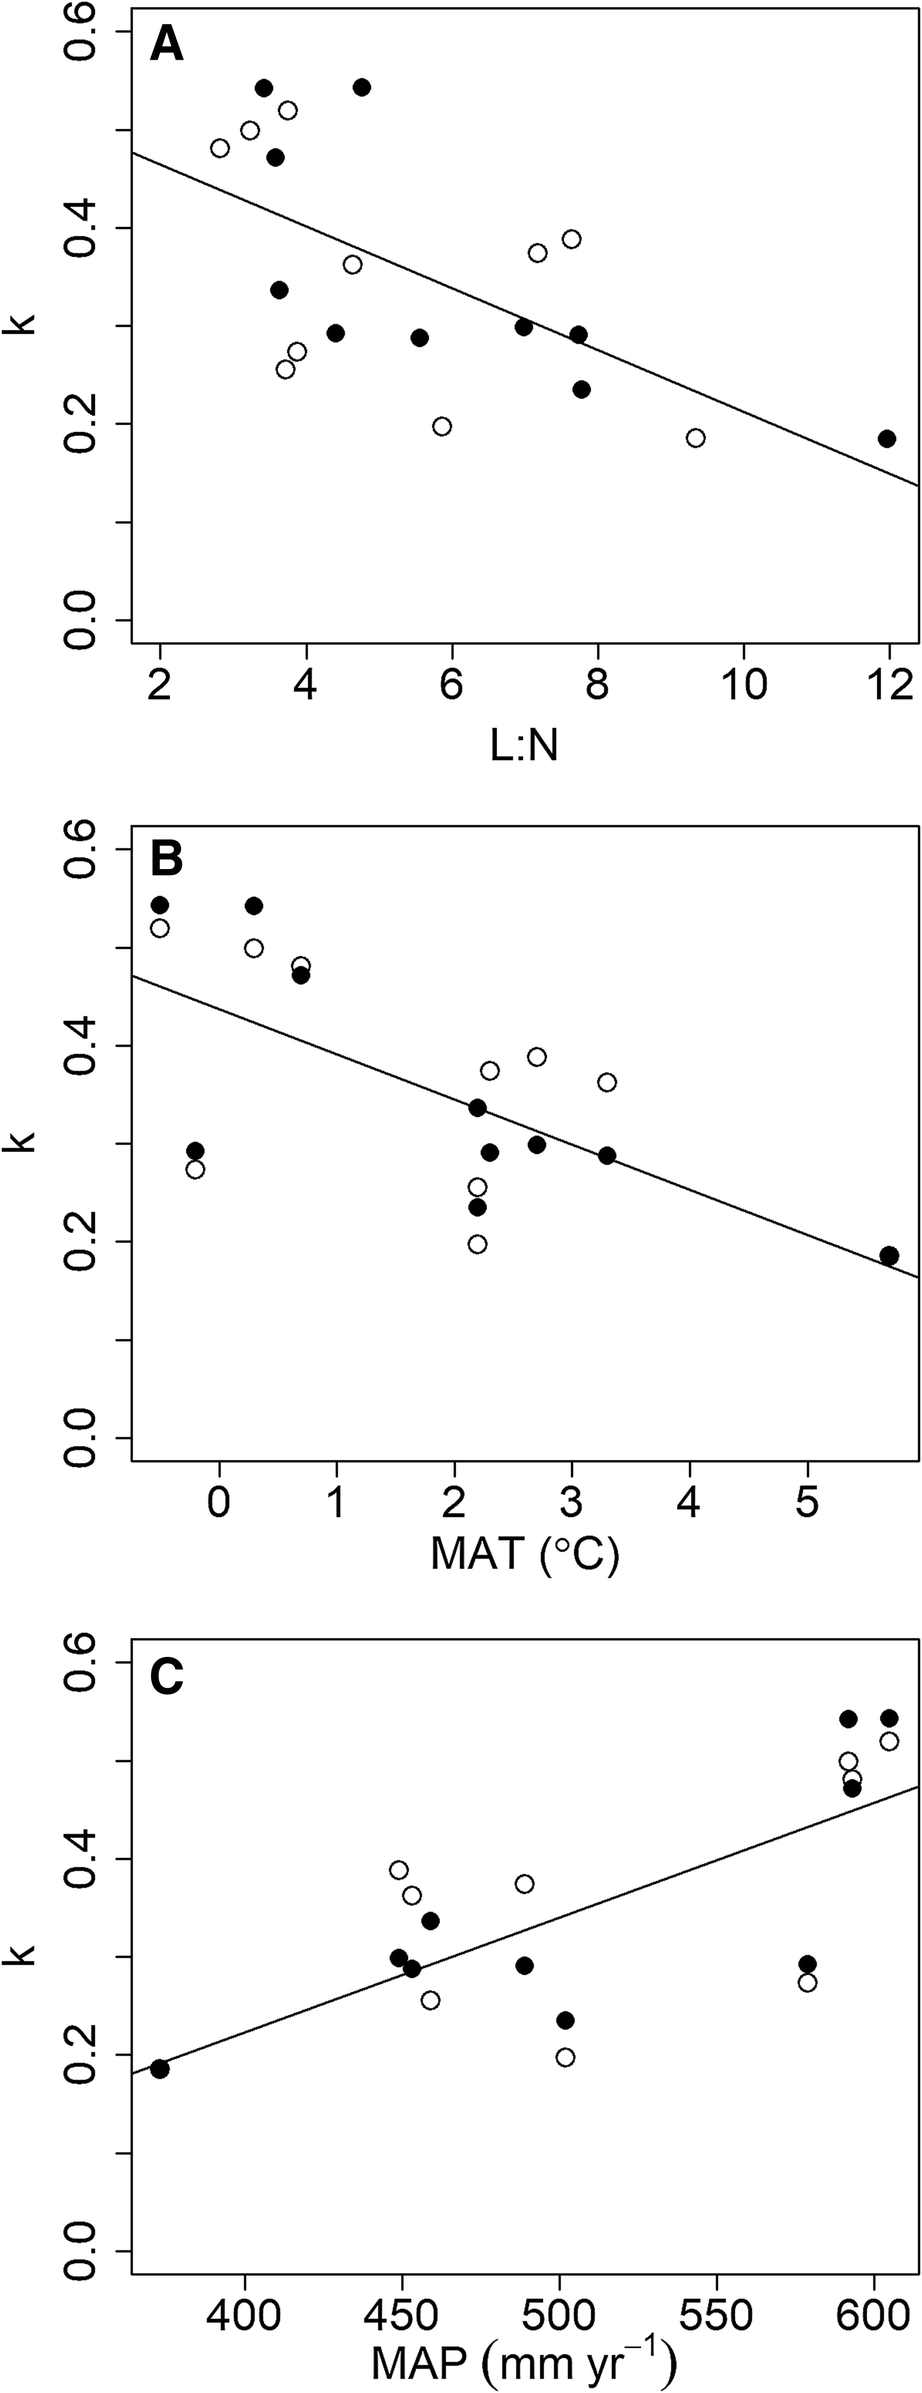 Litter Decomposition in Yellowstone Grasslands: The Roles of